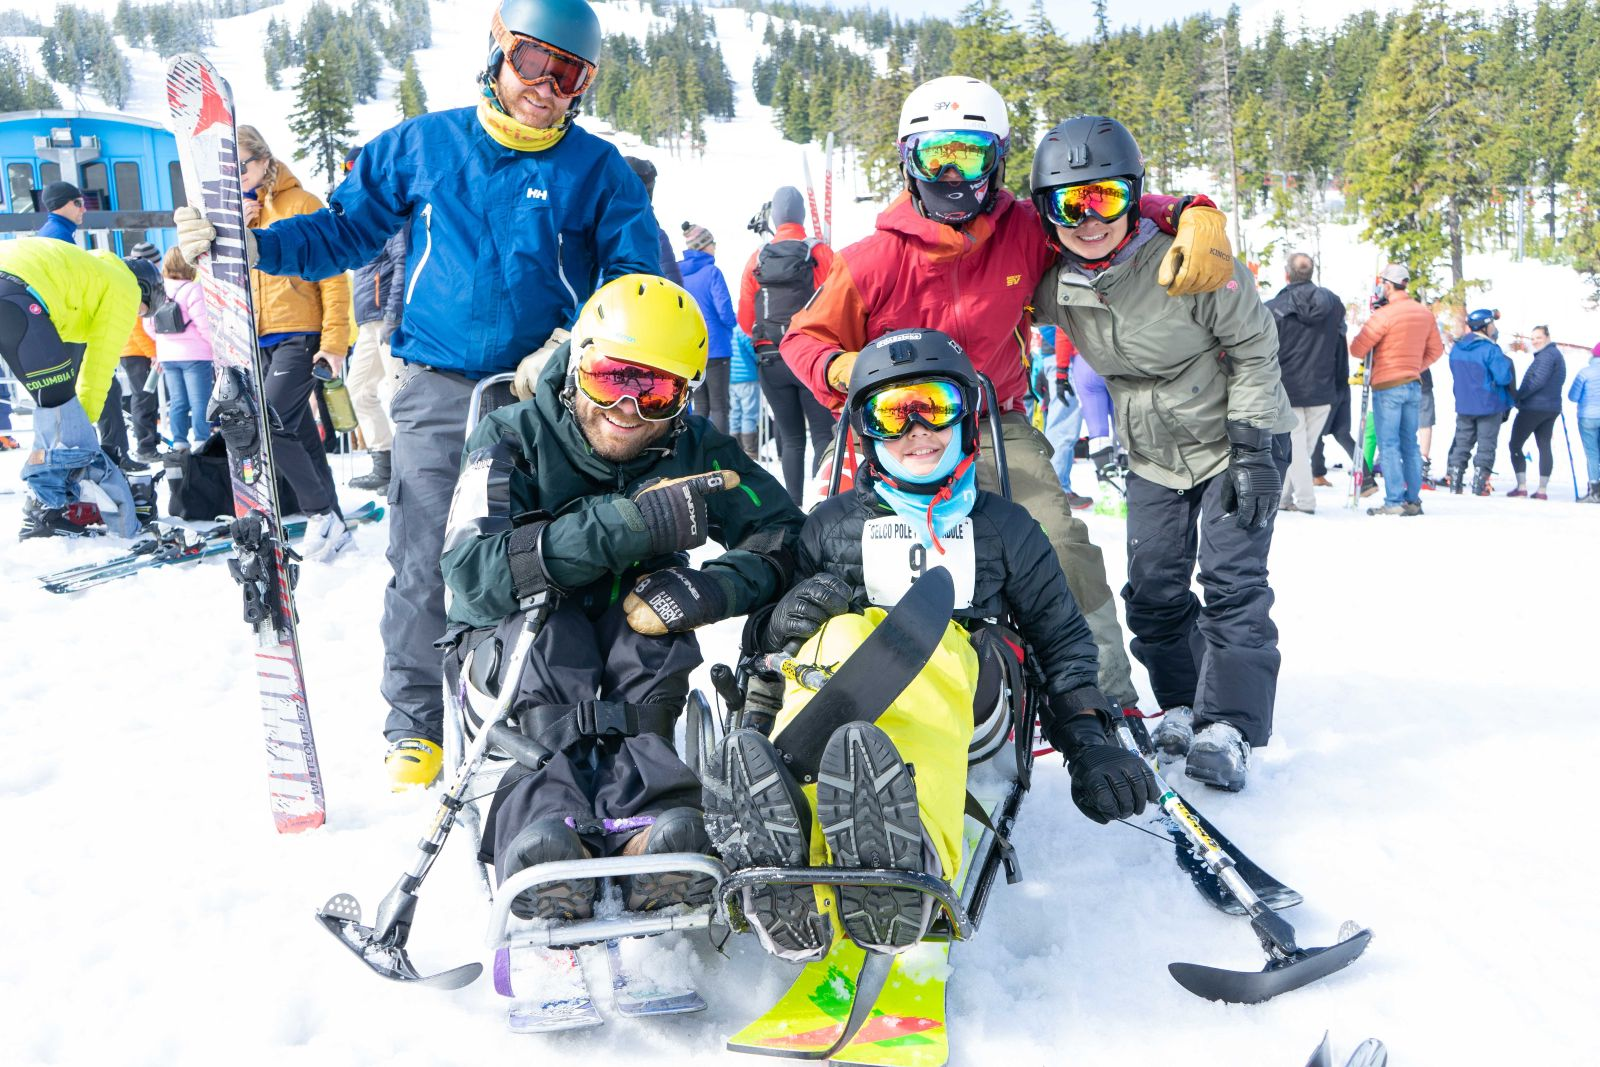 Sit-ski athletes Gabe (left) and Ken (right) with family and friends behind them